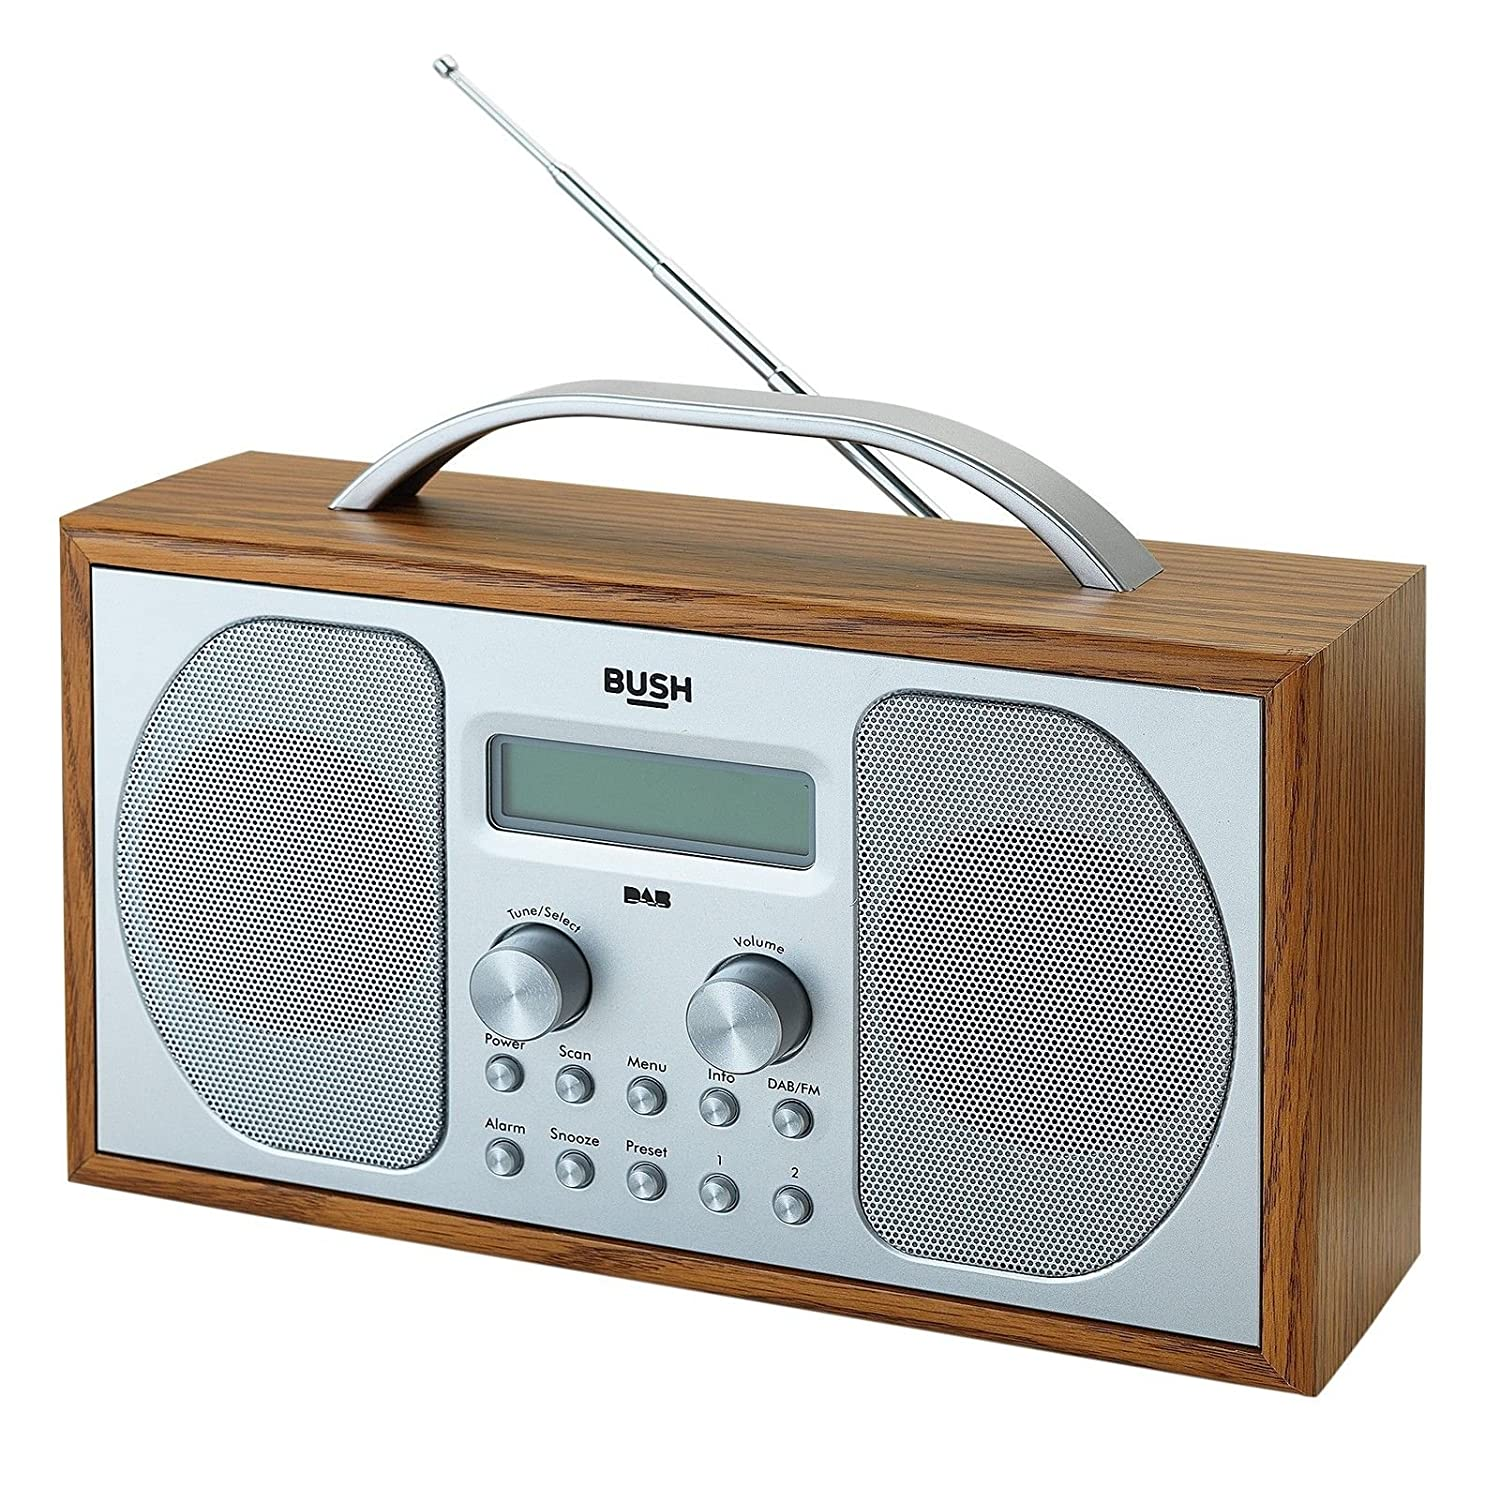 BUSH DAB/ FM STEREO RADIO IN A WOODEN CABINET: Amazon.co.uk: Electronics